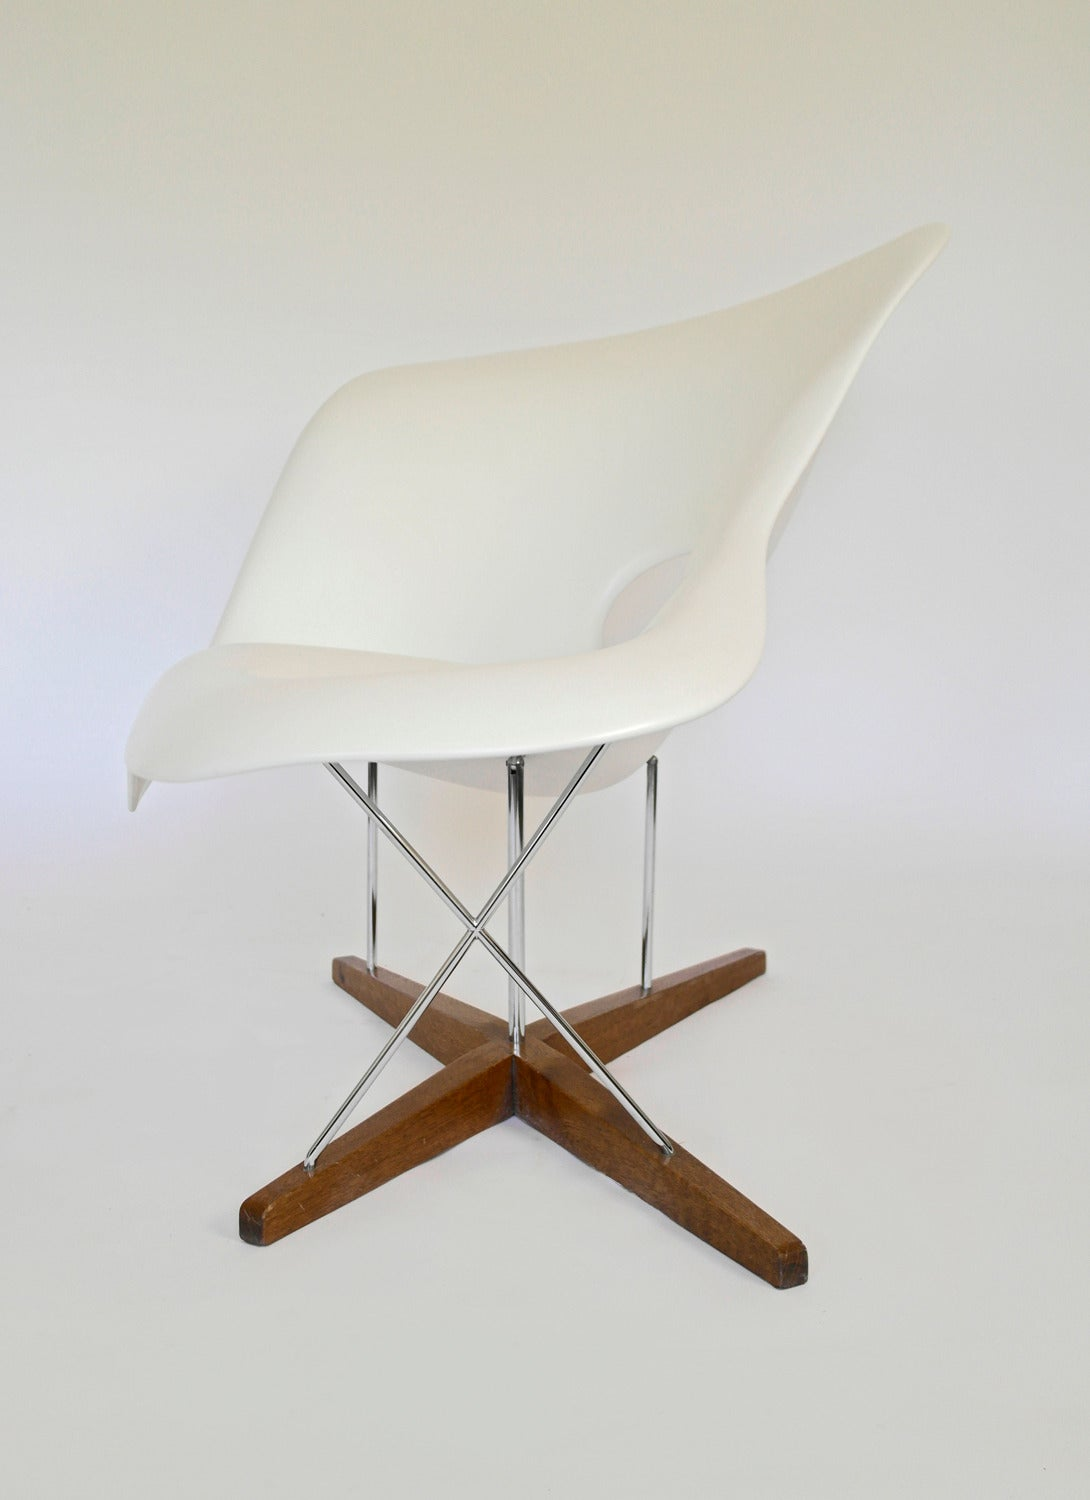 Vitra edition la chaise by charles and ray eames at 1stdibs for Chaise coque eames